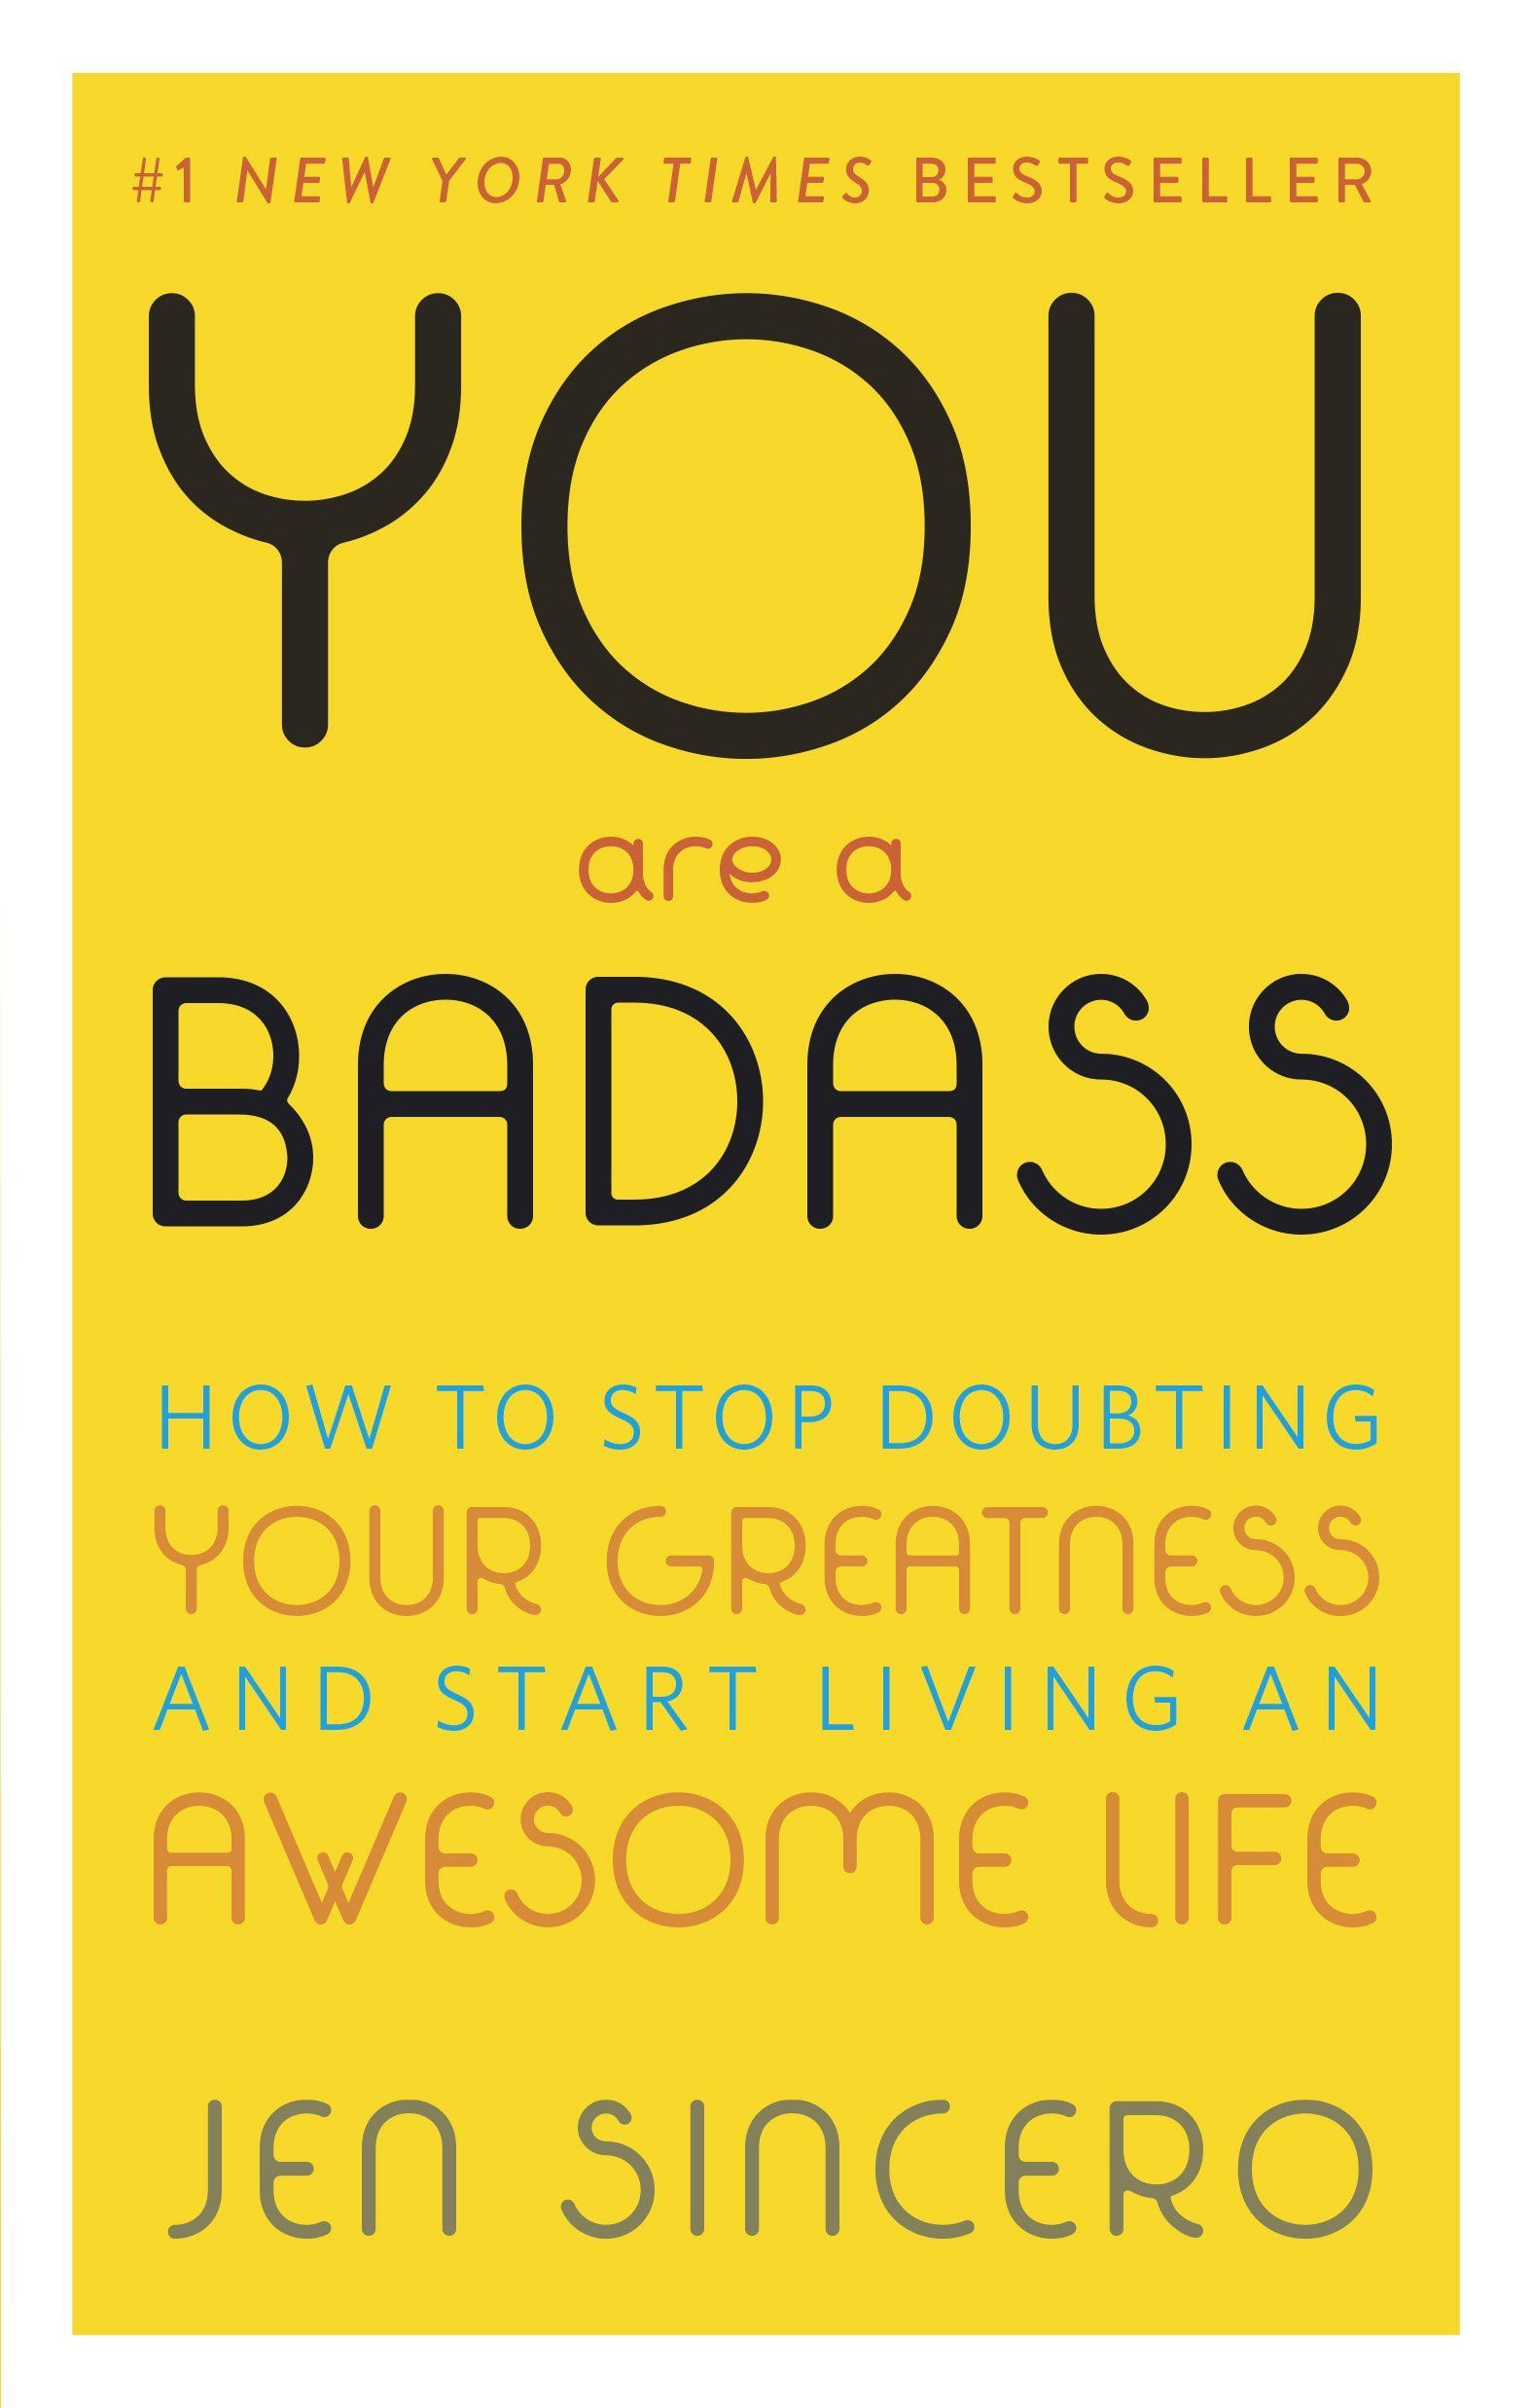 """I just finished reading YOU ARE A BAD ASS by Jen Sincero. It's subtitle is  """"How to Stop Doubting Your Greatness and Start Living an Awesome Life""""."""